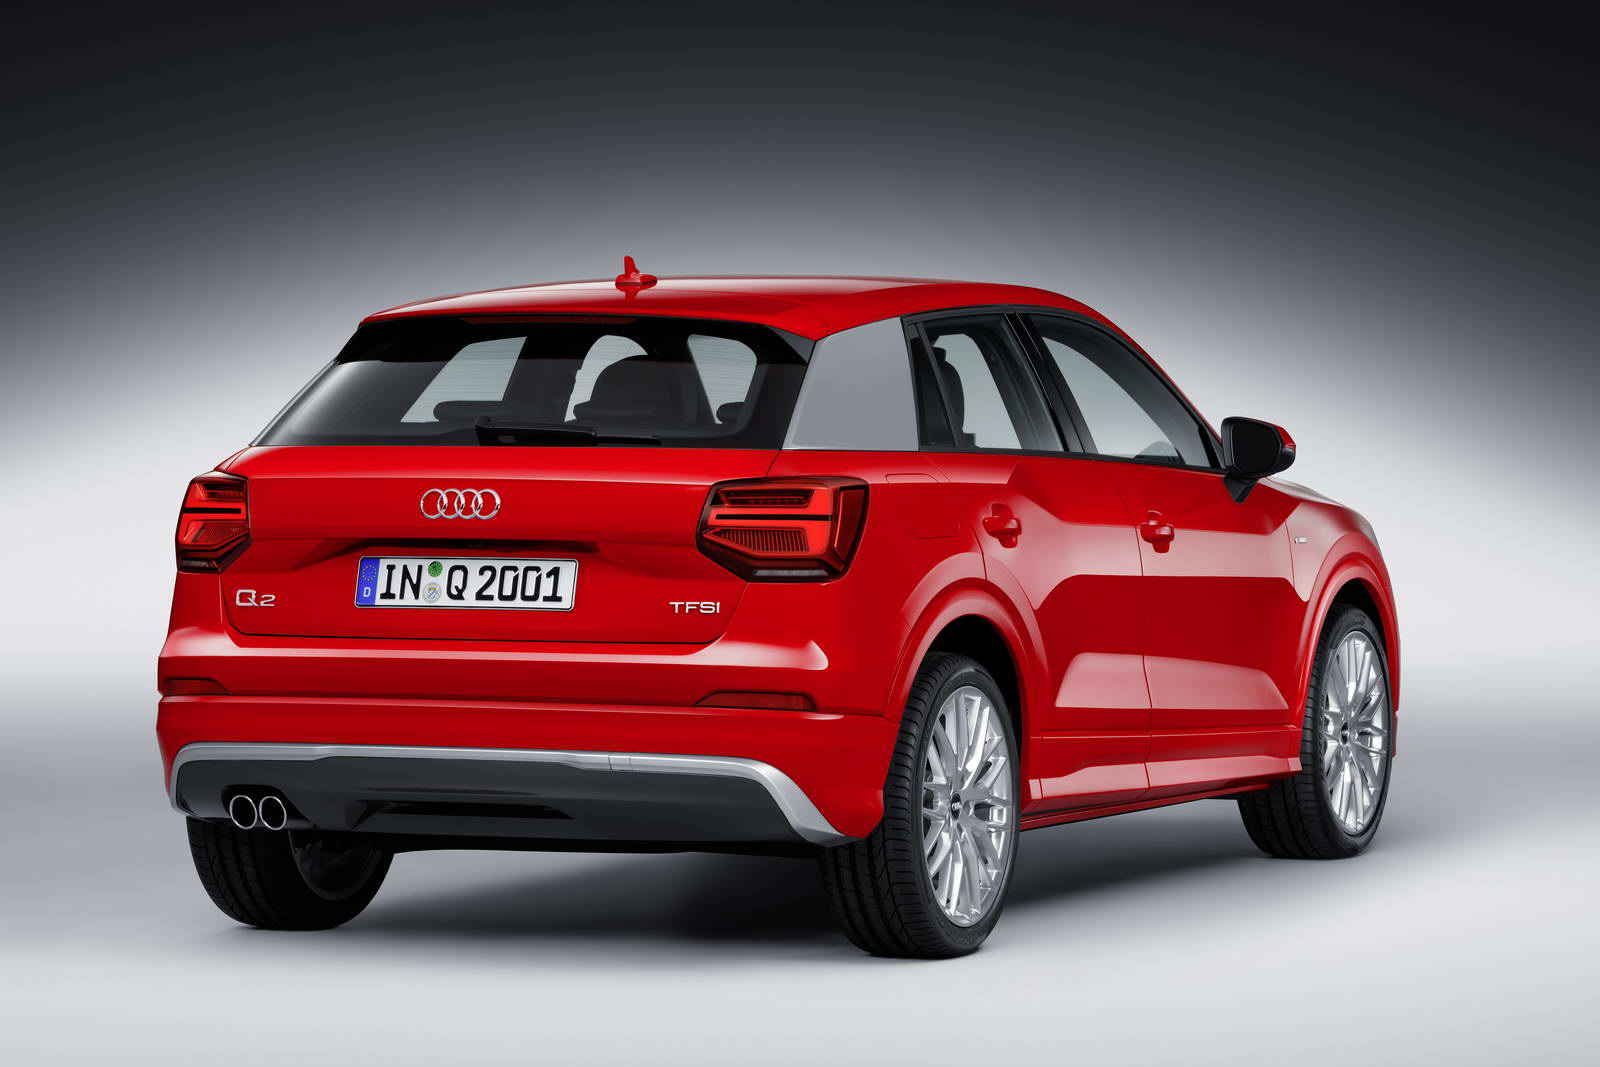 new audi q2 small suv sheds ingolstadt s one design fits all mantra. Black Bedroom Furniture Sets. Home Design Ideas